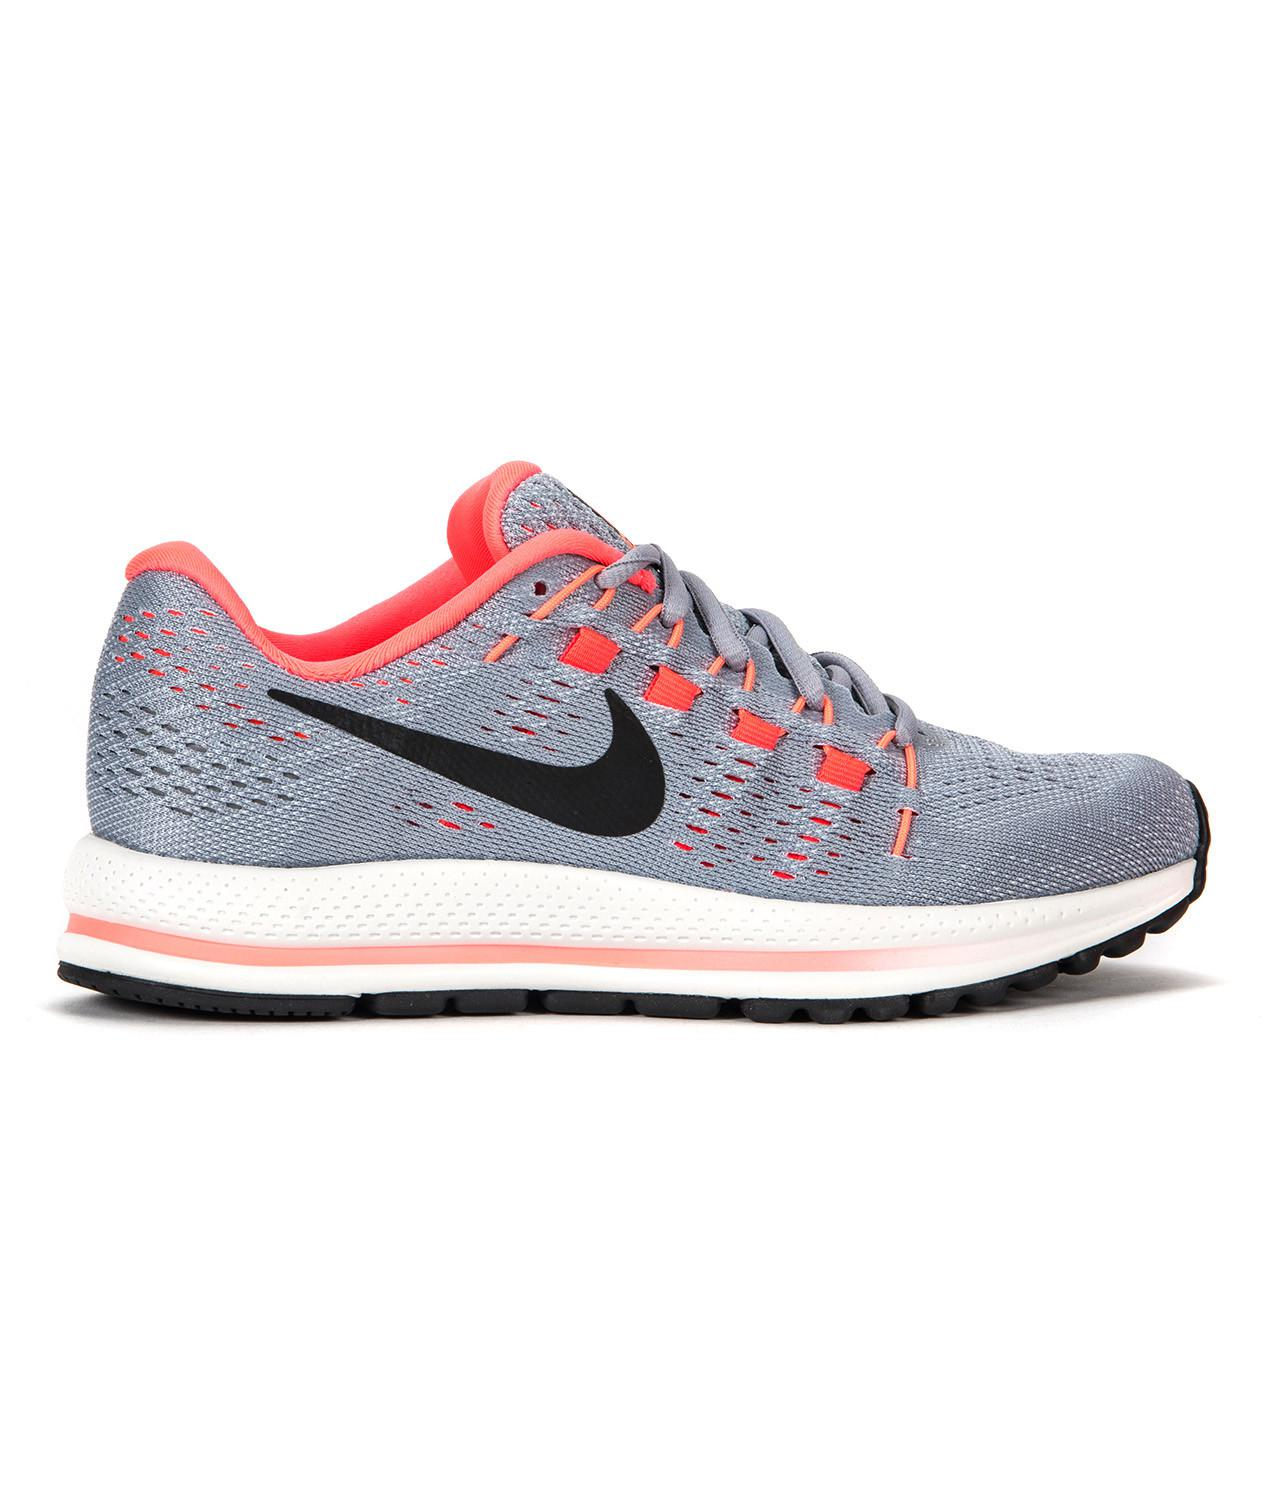 a82321bedbb Lyst - Nike Zoom Vomero 12 Wm Shoes Wolf in Gray